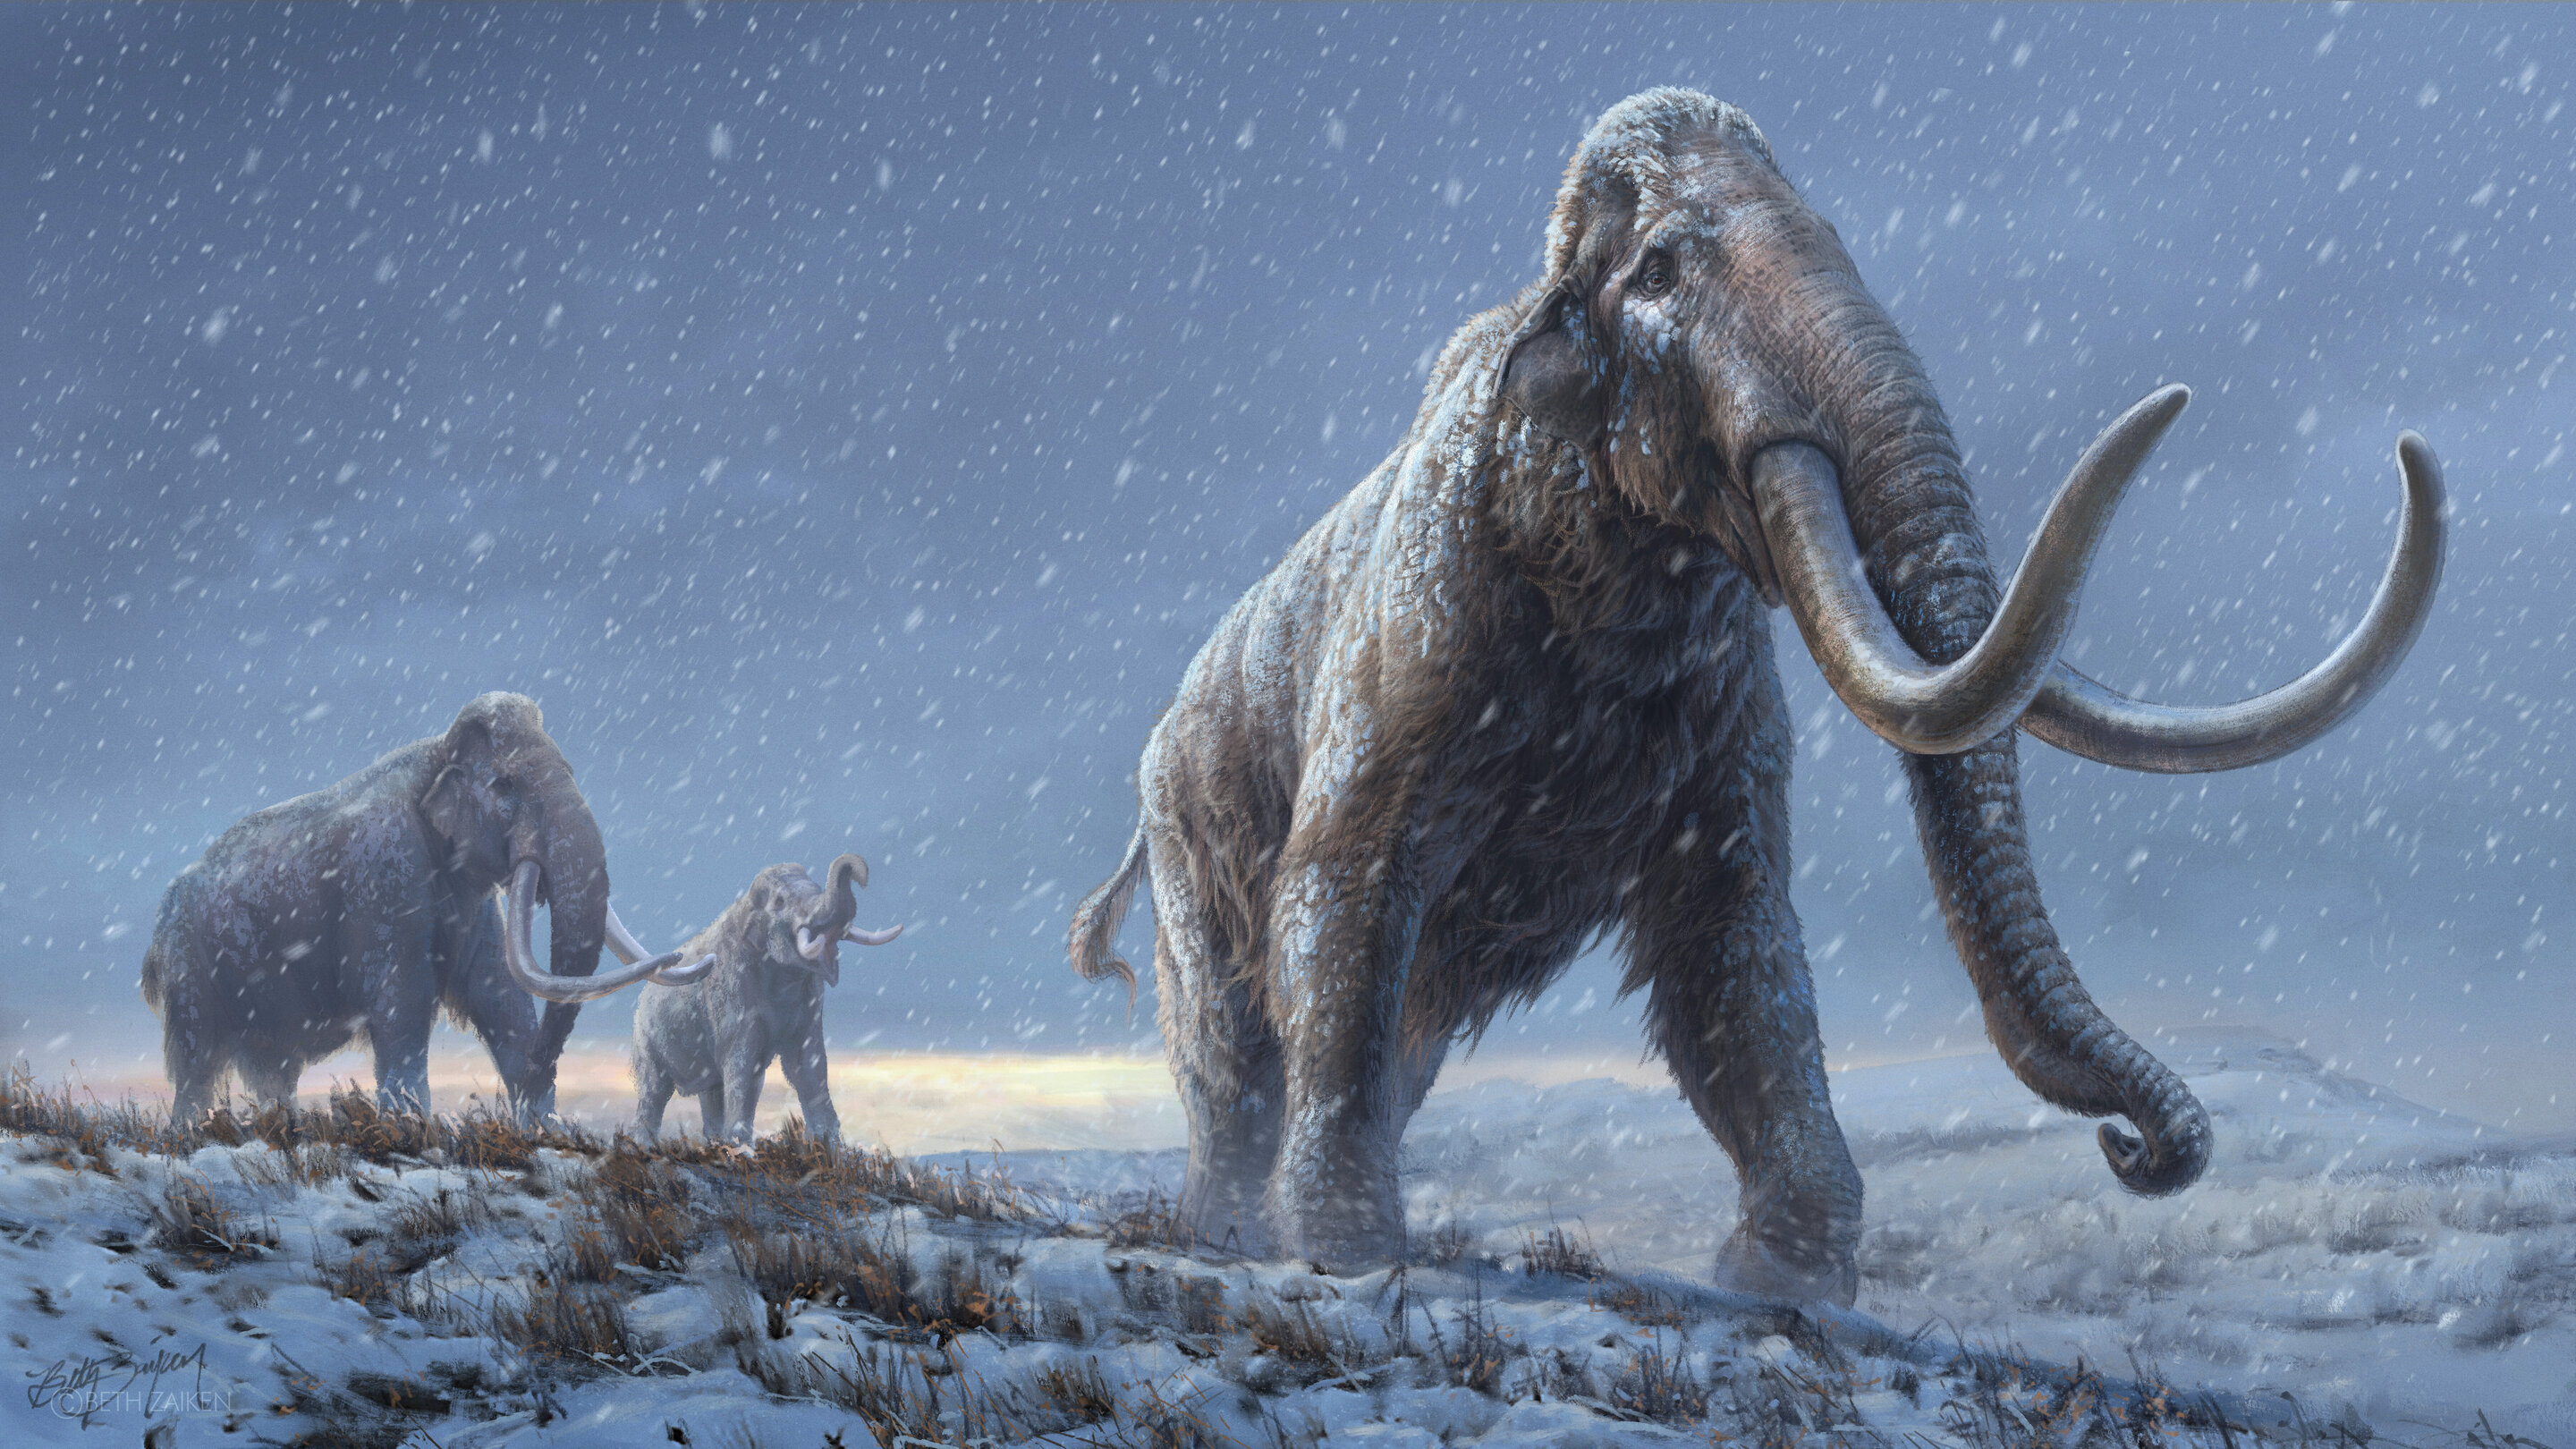 World's oldest DNA sequenced from million-year-old mammoths